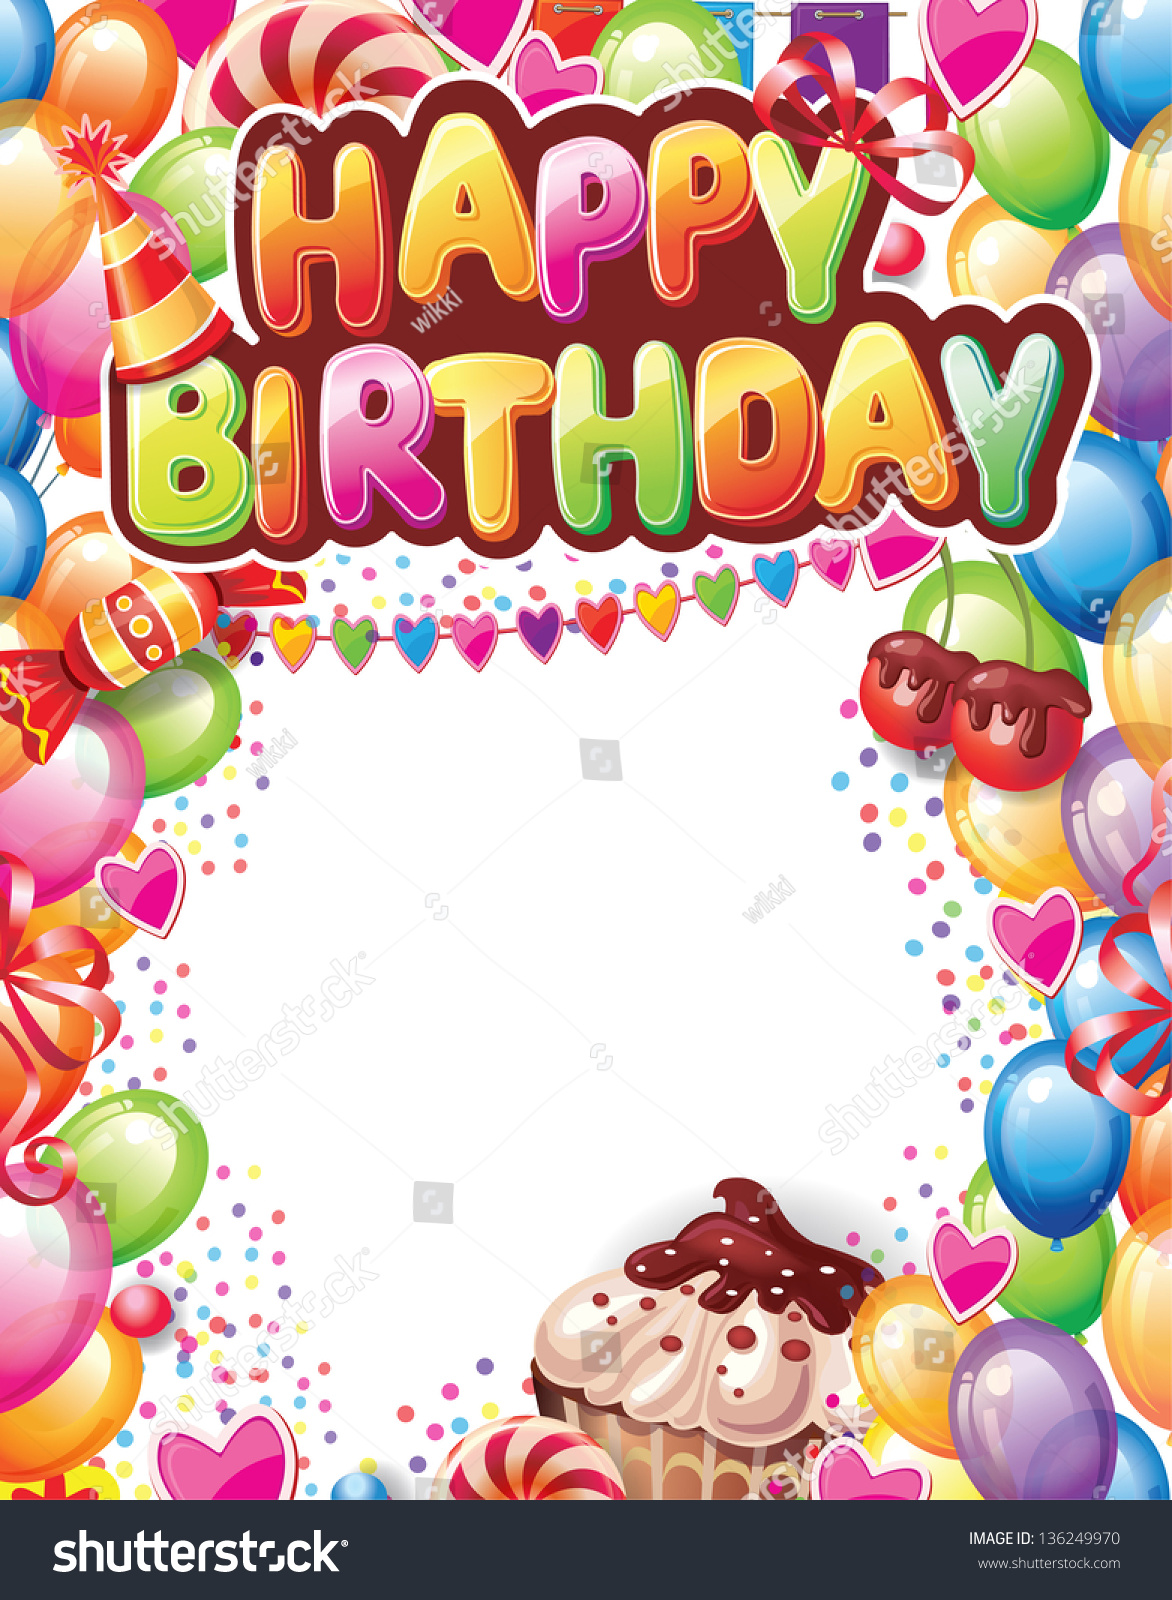 birthday cards design with message ; stock-vector-template-for-happy-birthday-card-136249970